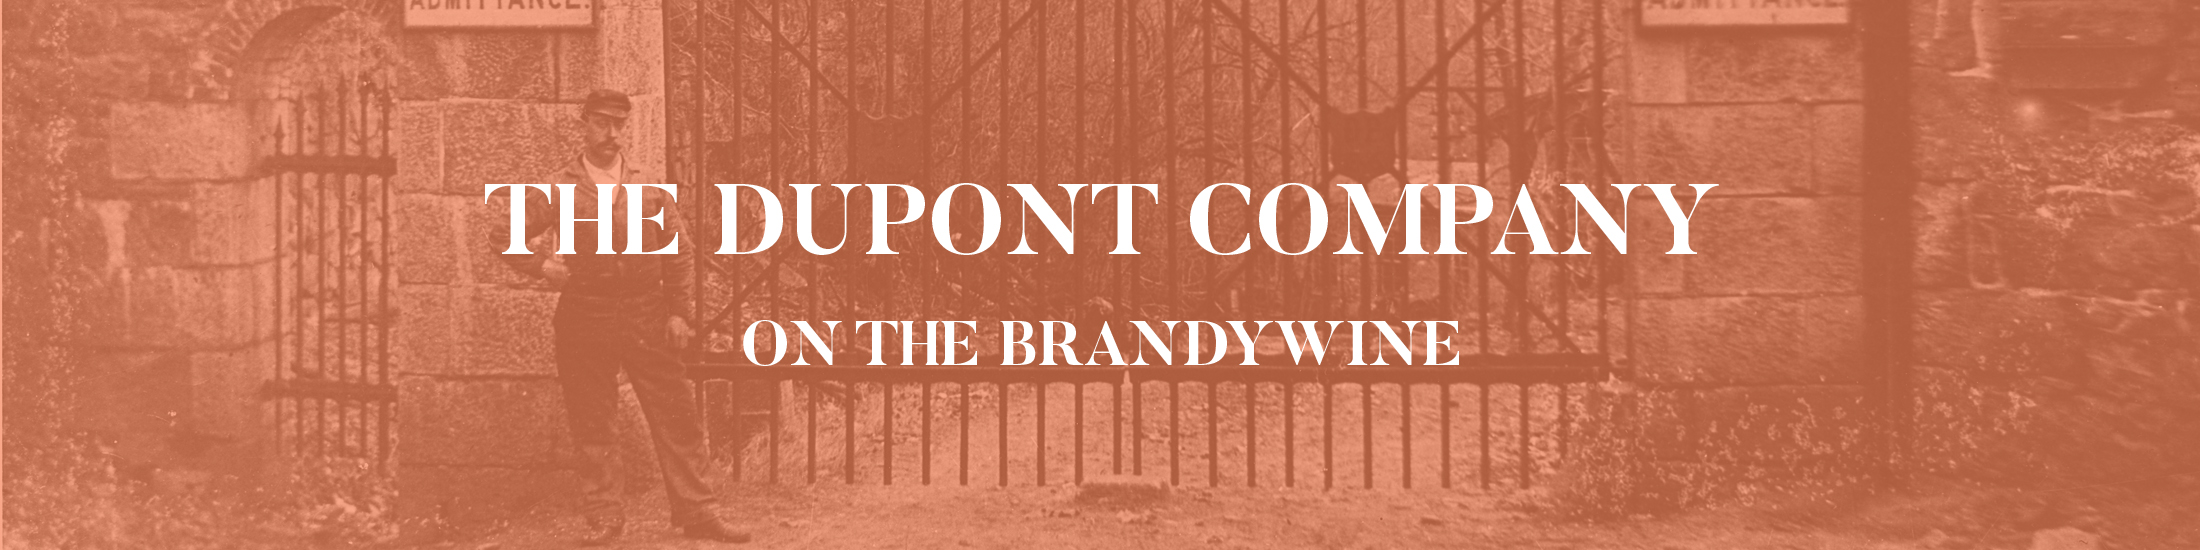 The Du Pont Company on the Brandywine